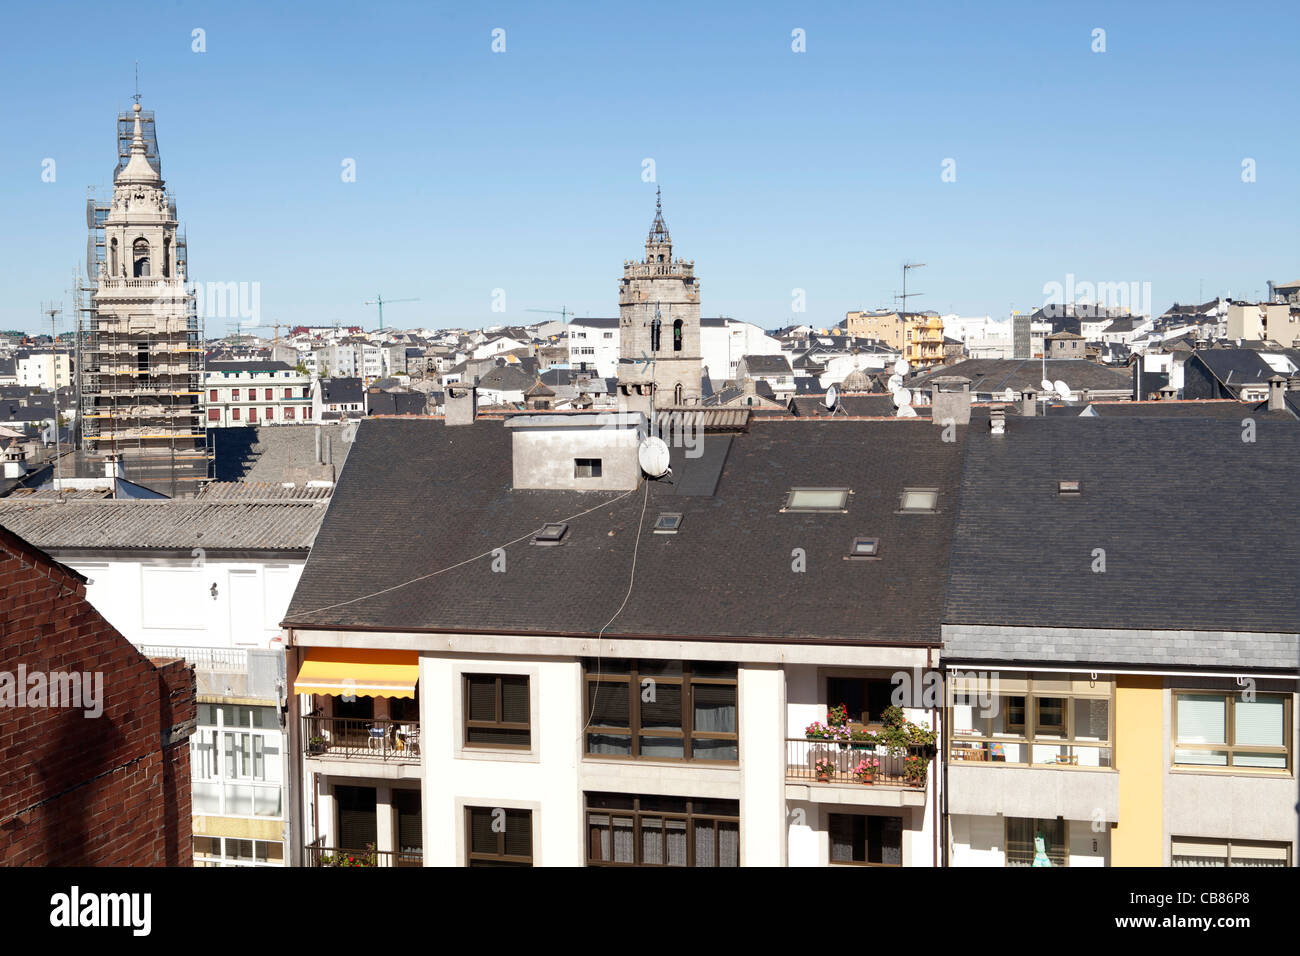 Lugo Galicia Spain city urban country turism nord monument ciudad urbano cathedral roofs - Stock Image